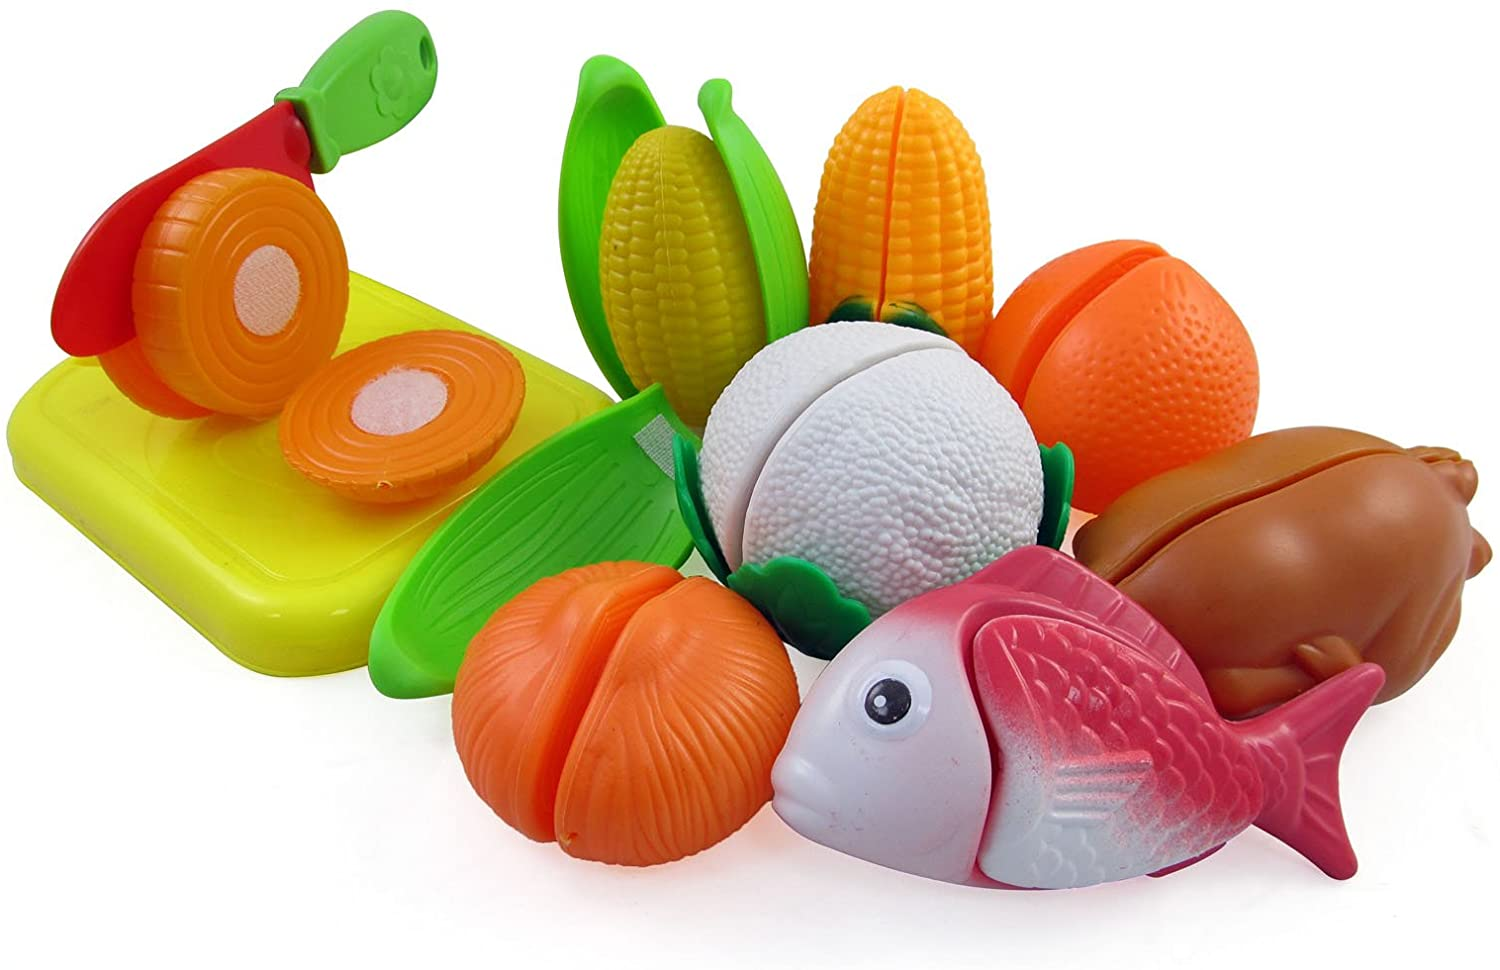 Liberty Imports Cutting Vegetables, Fish & Chicken Pretend Play Food Set for Kids with Cutting Board & Knife